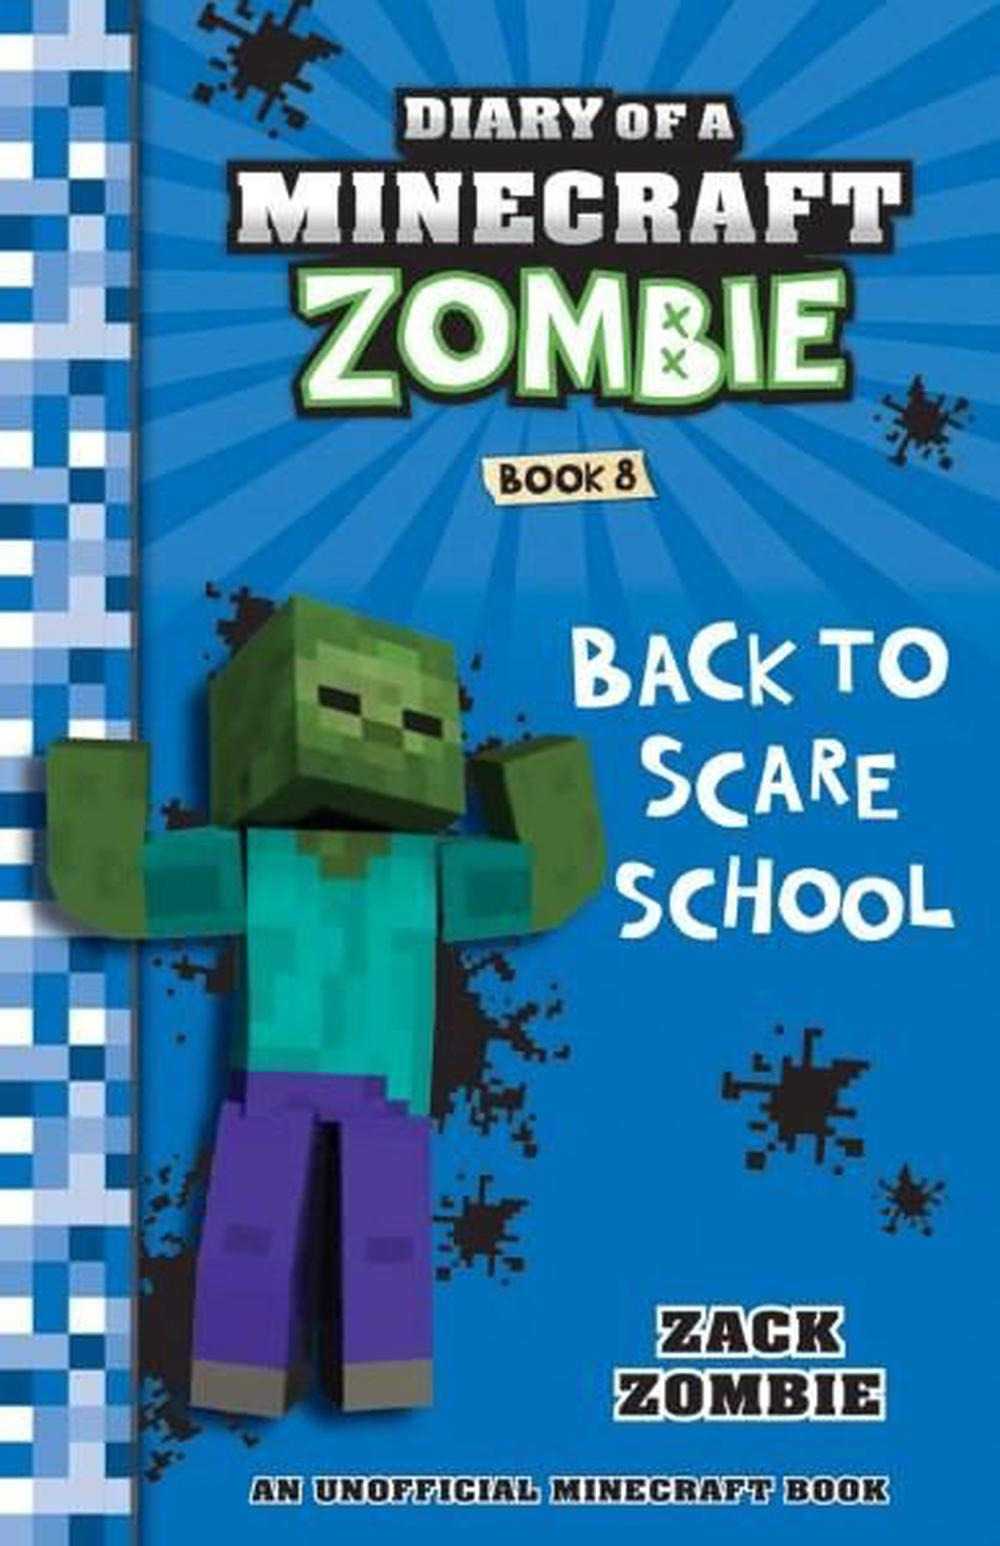 Diary of a Minecraft Zombie #8Back to Scare School by ZACK ZOMBIE, ISBN: 9781743818343